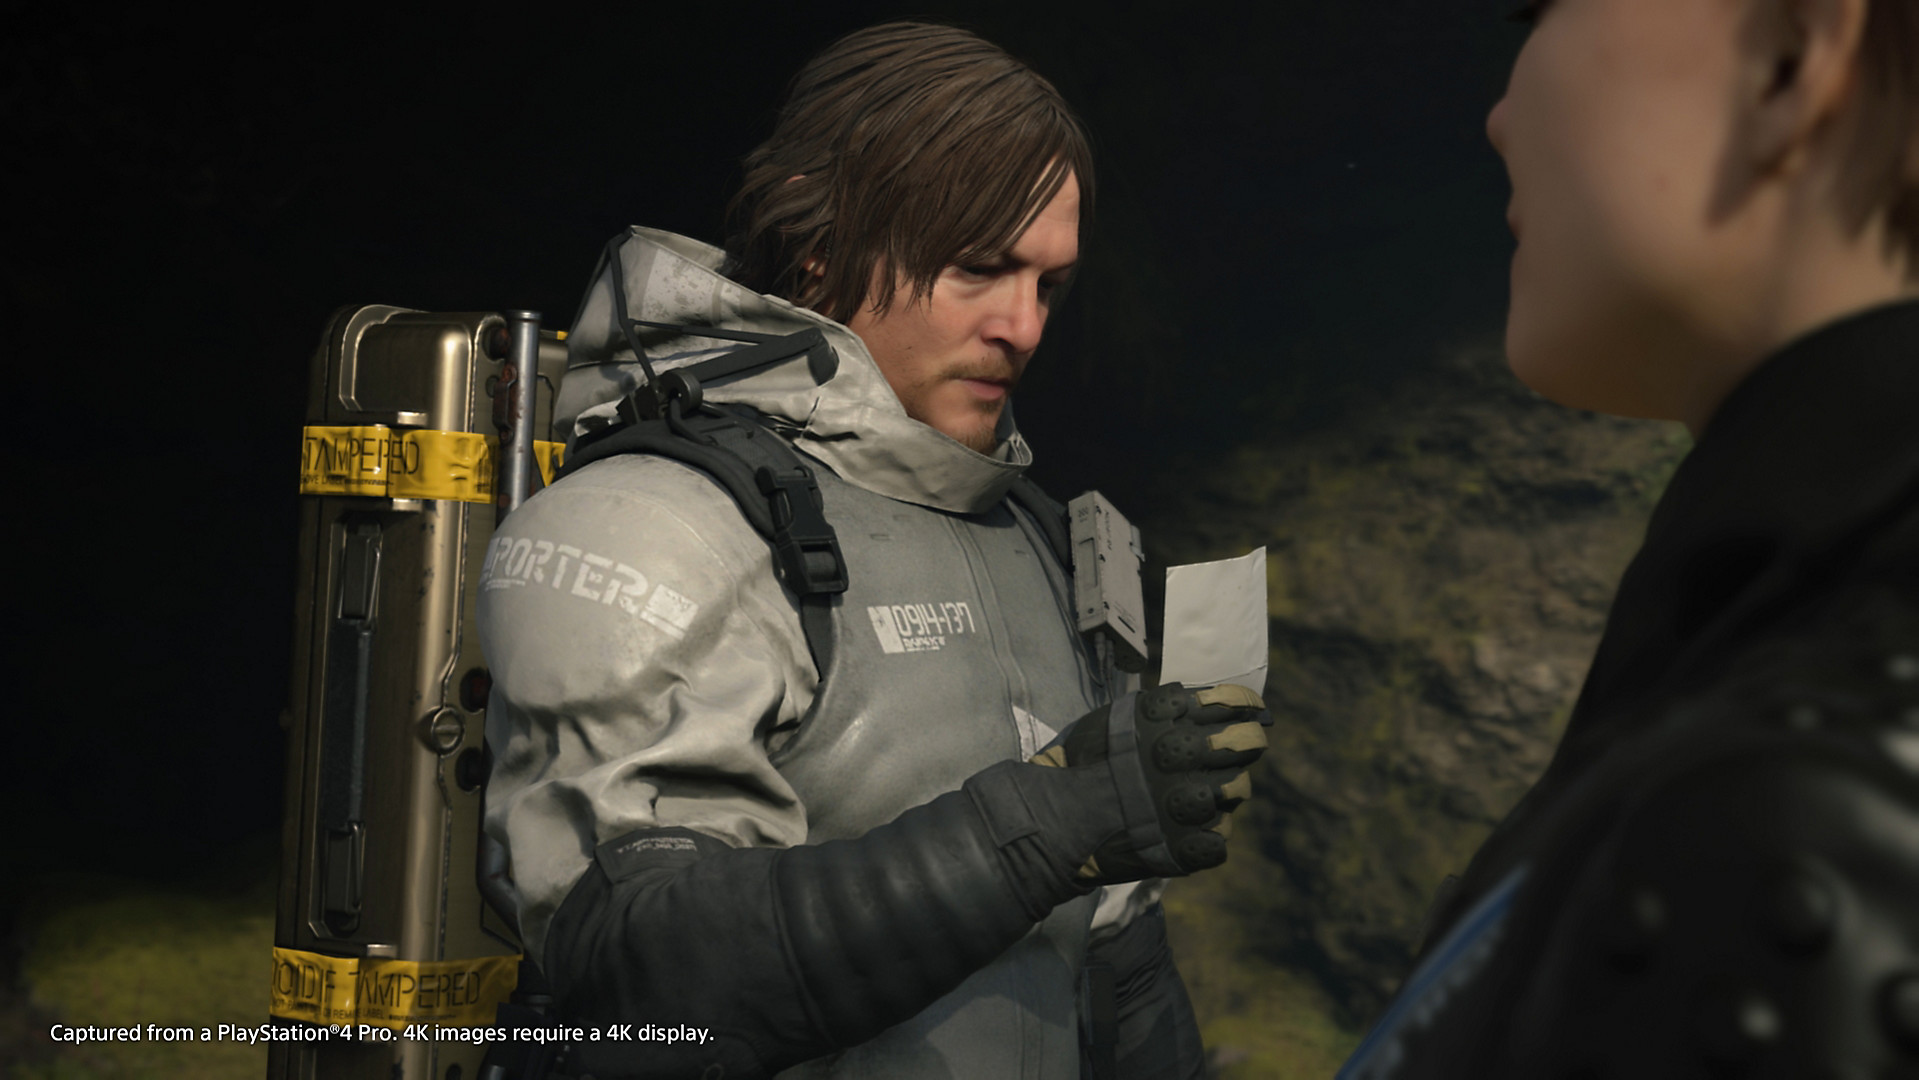 death stranding preppers, gear, and upgrades